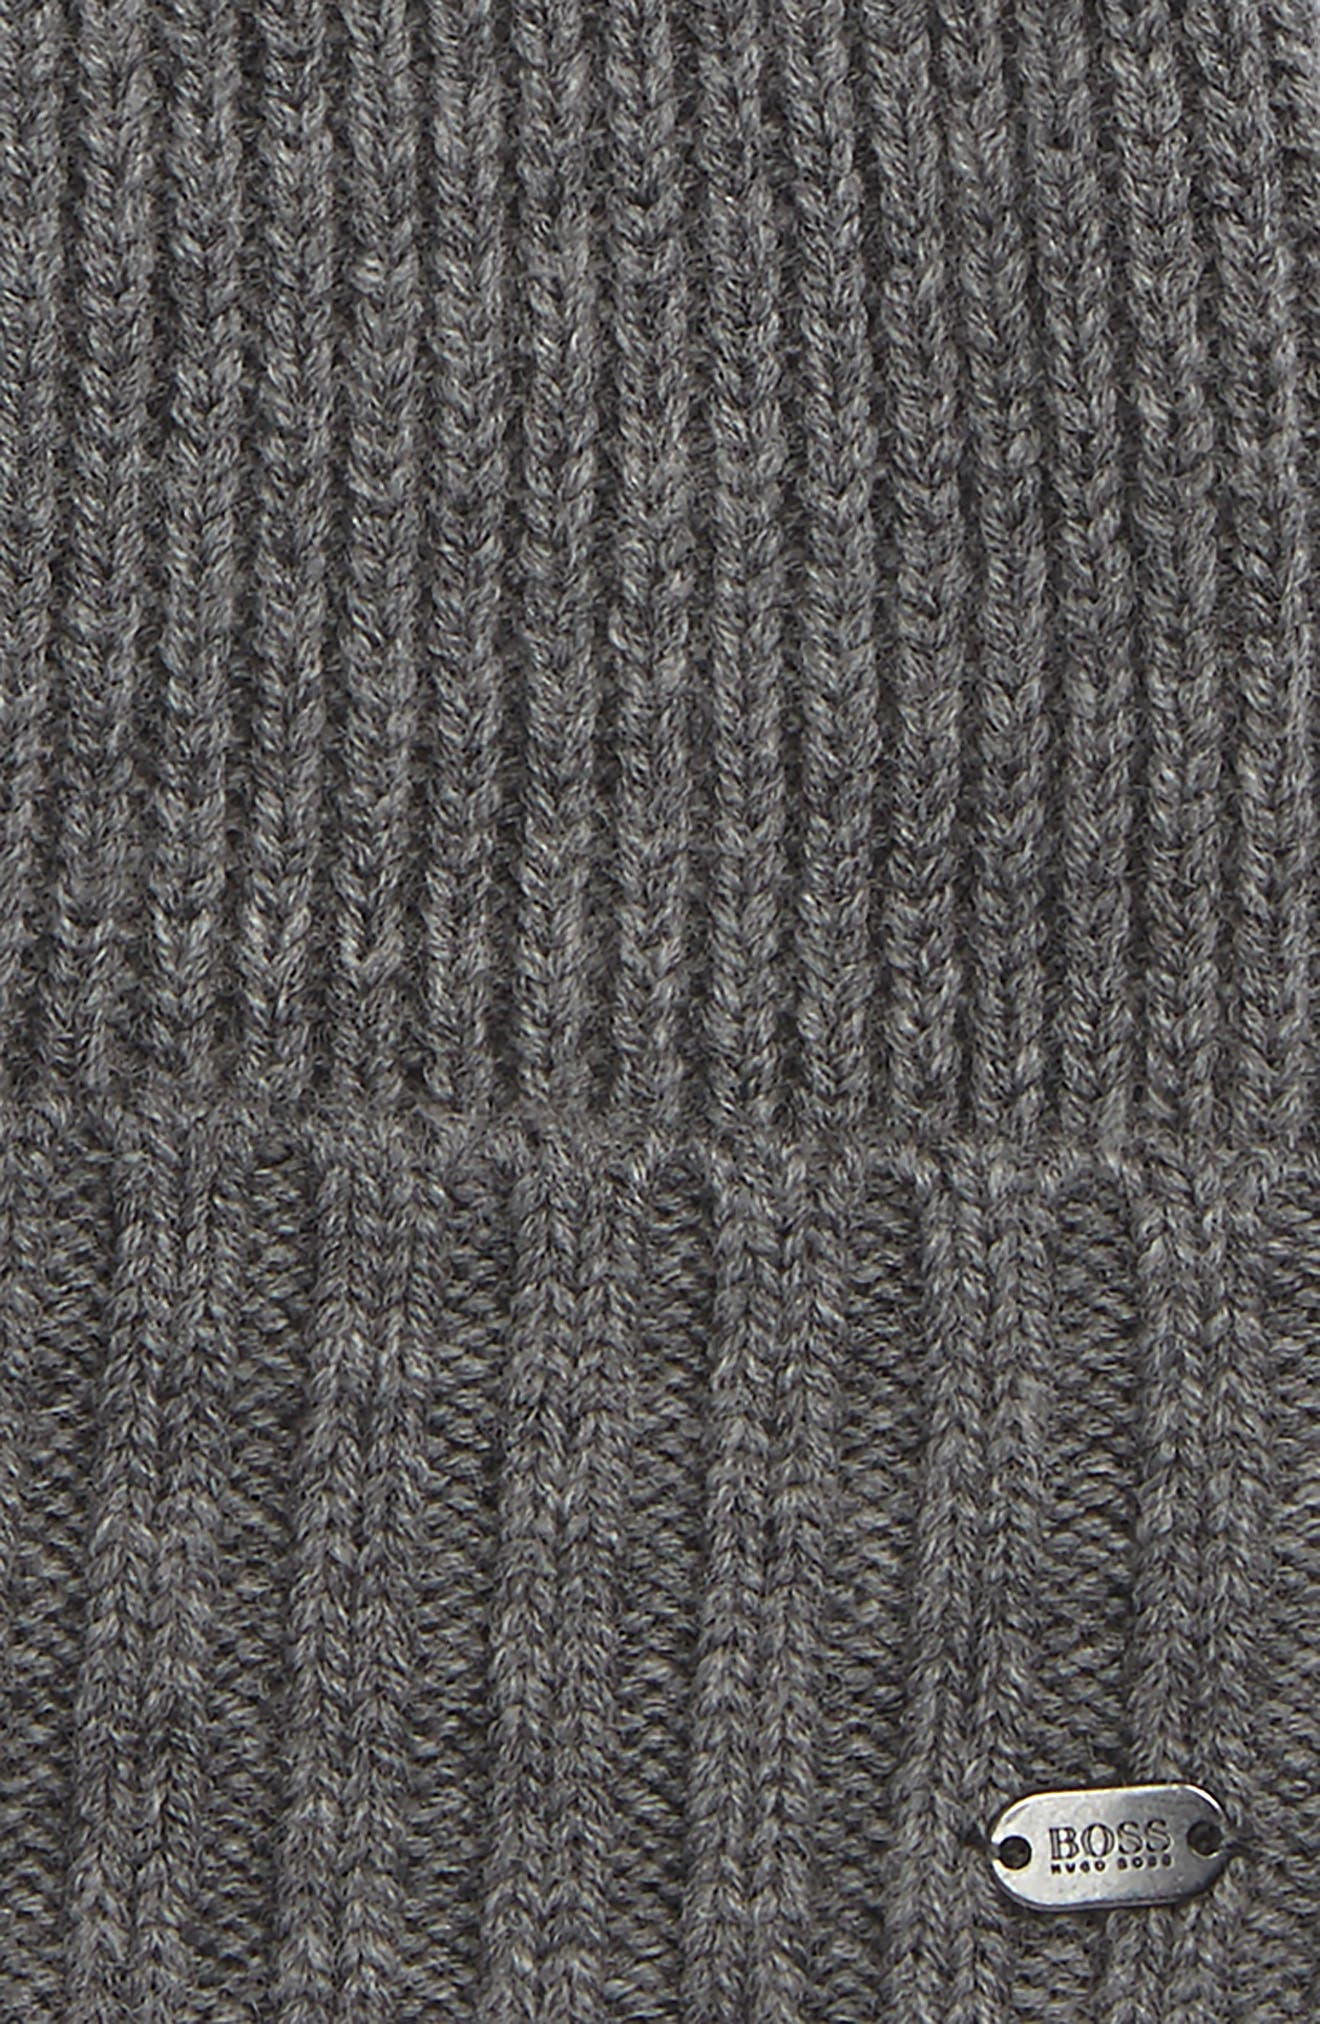 C-Fati Beanie,                             Alternate thumbnail 7, color,